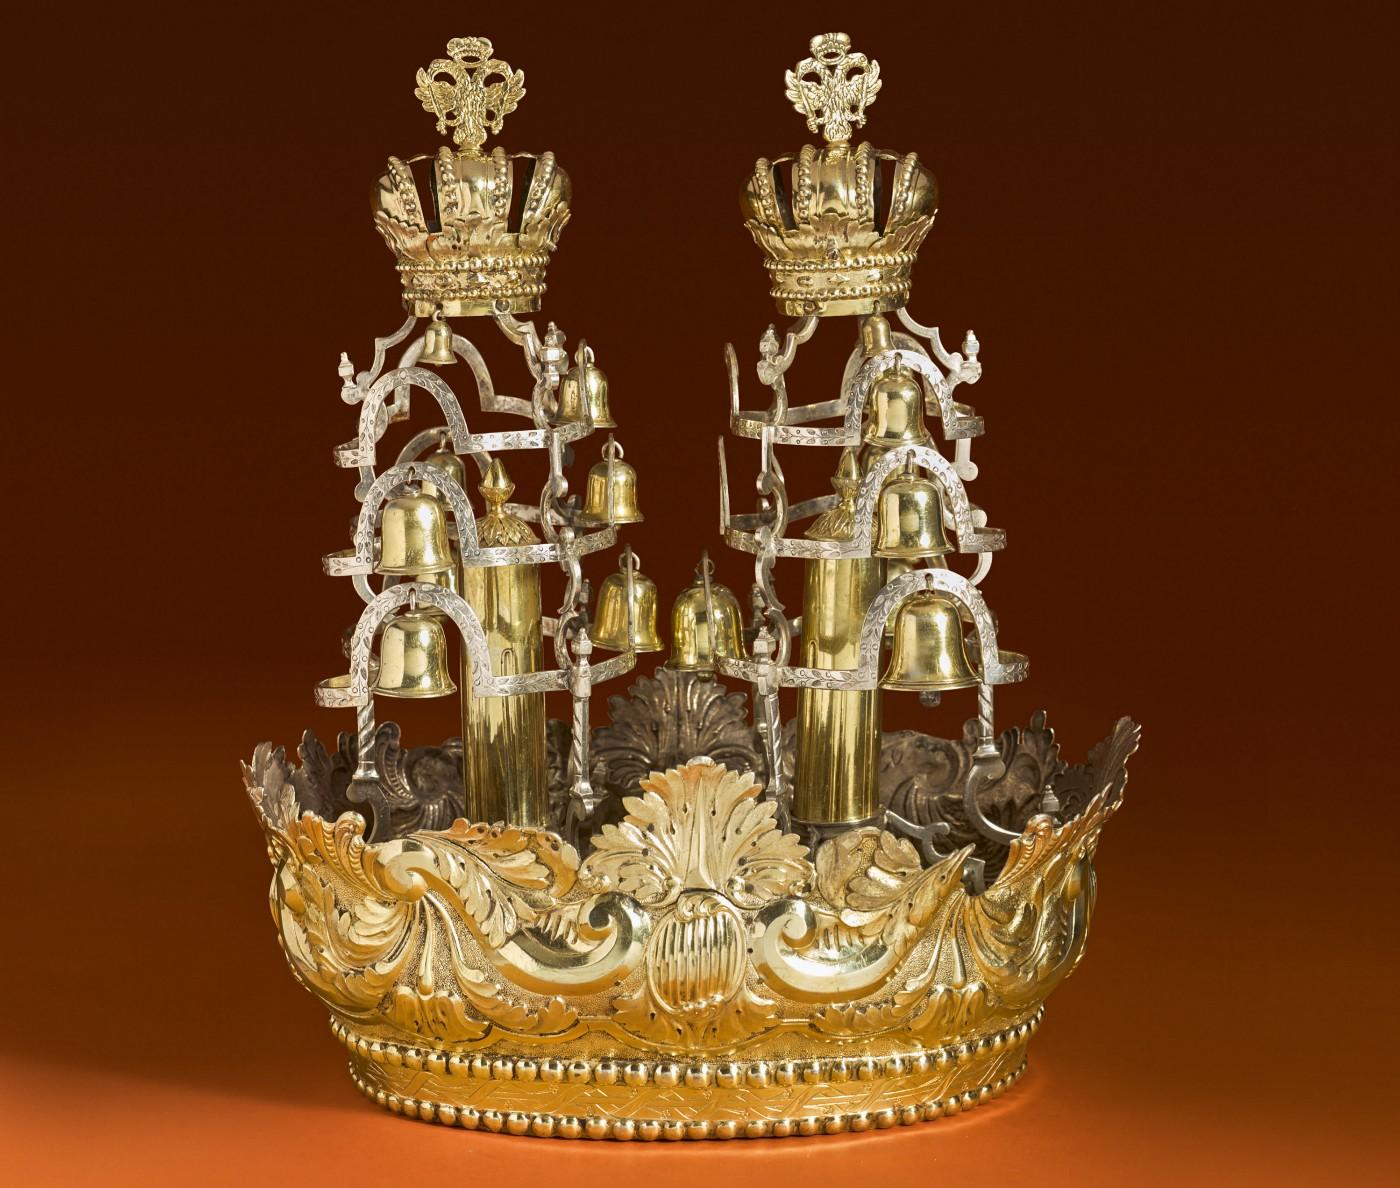 A Rare and Large Hungarian Parcel-Gilt Silver Set of Torah Crown and Pair Of Finials